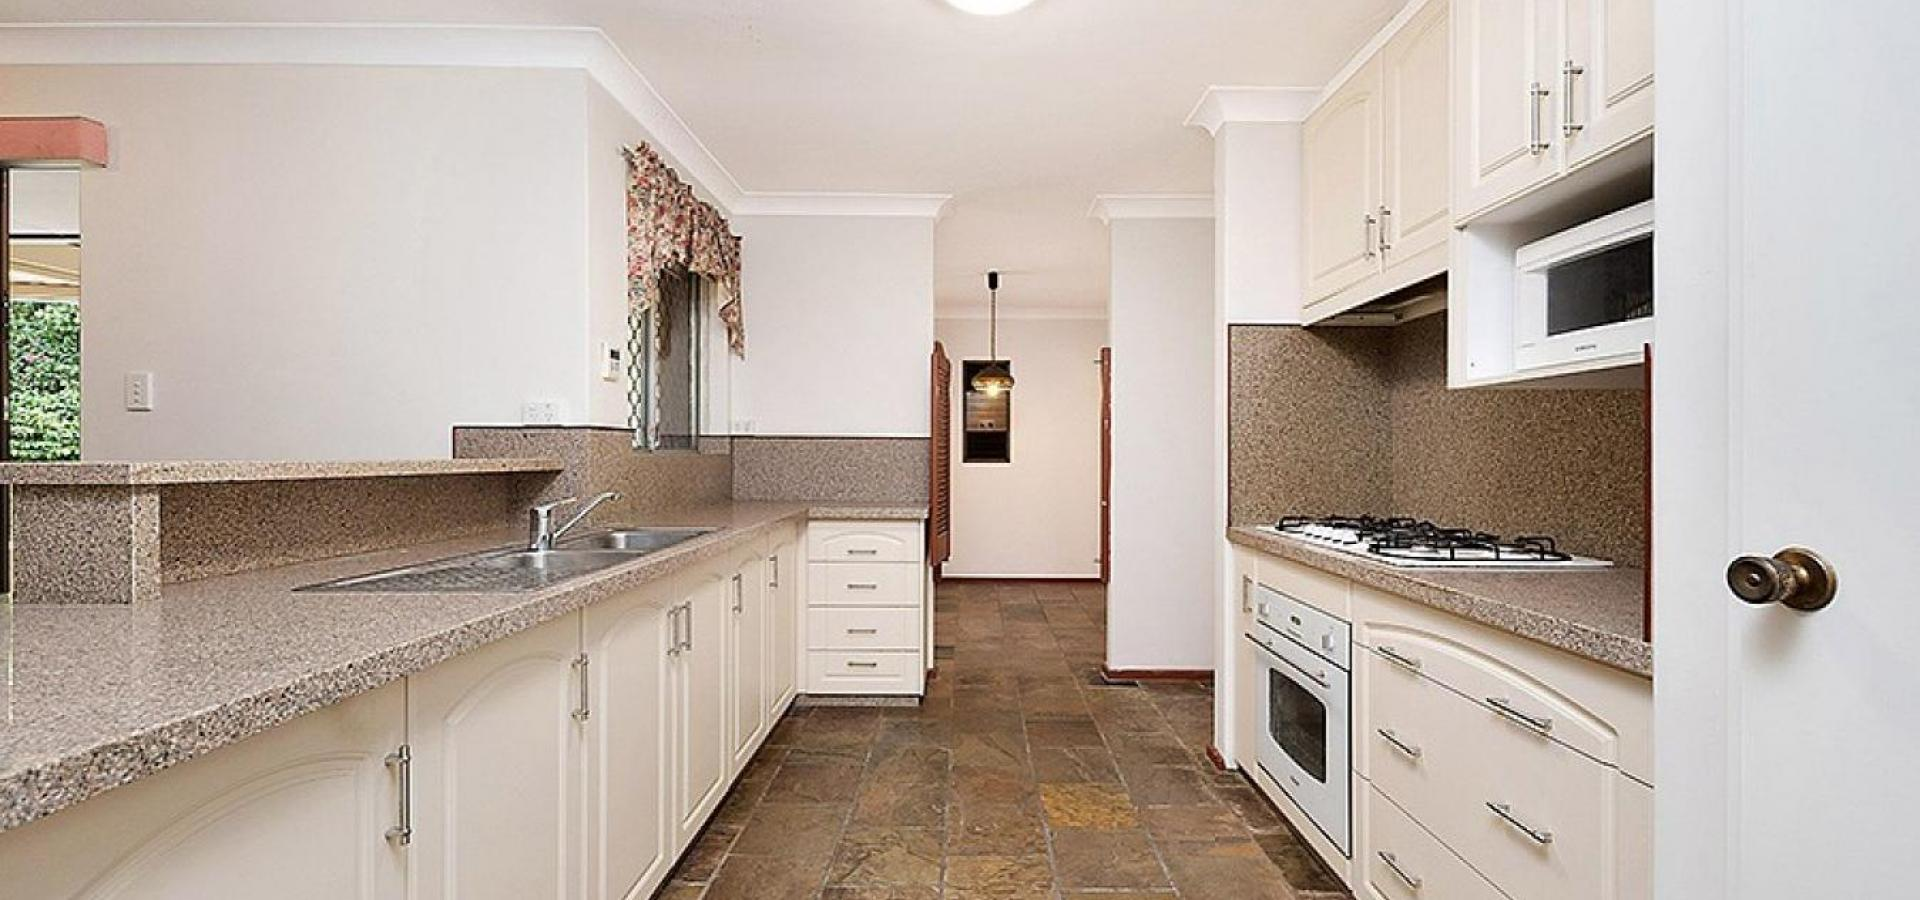 NEW PRICE!! CONVENIENTLY LOCATED HOME ON LARGE 759 SQM BLOCK!